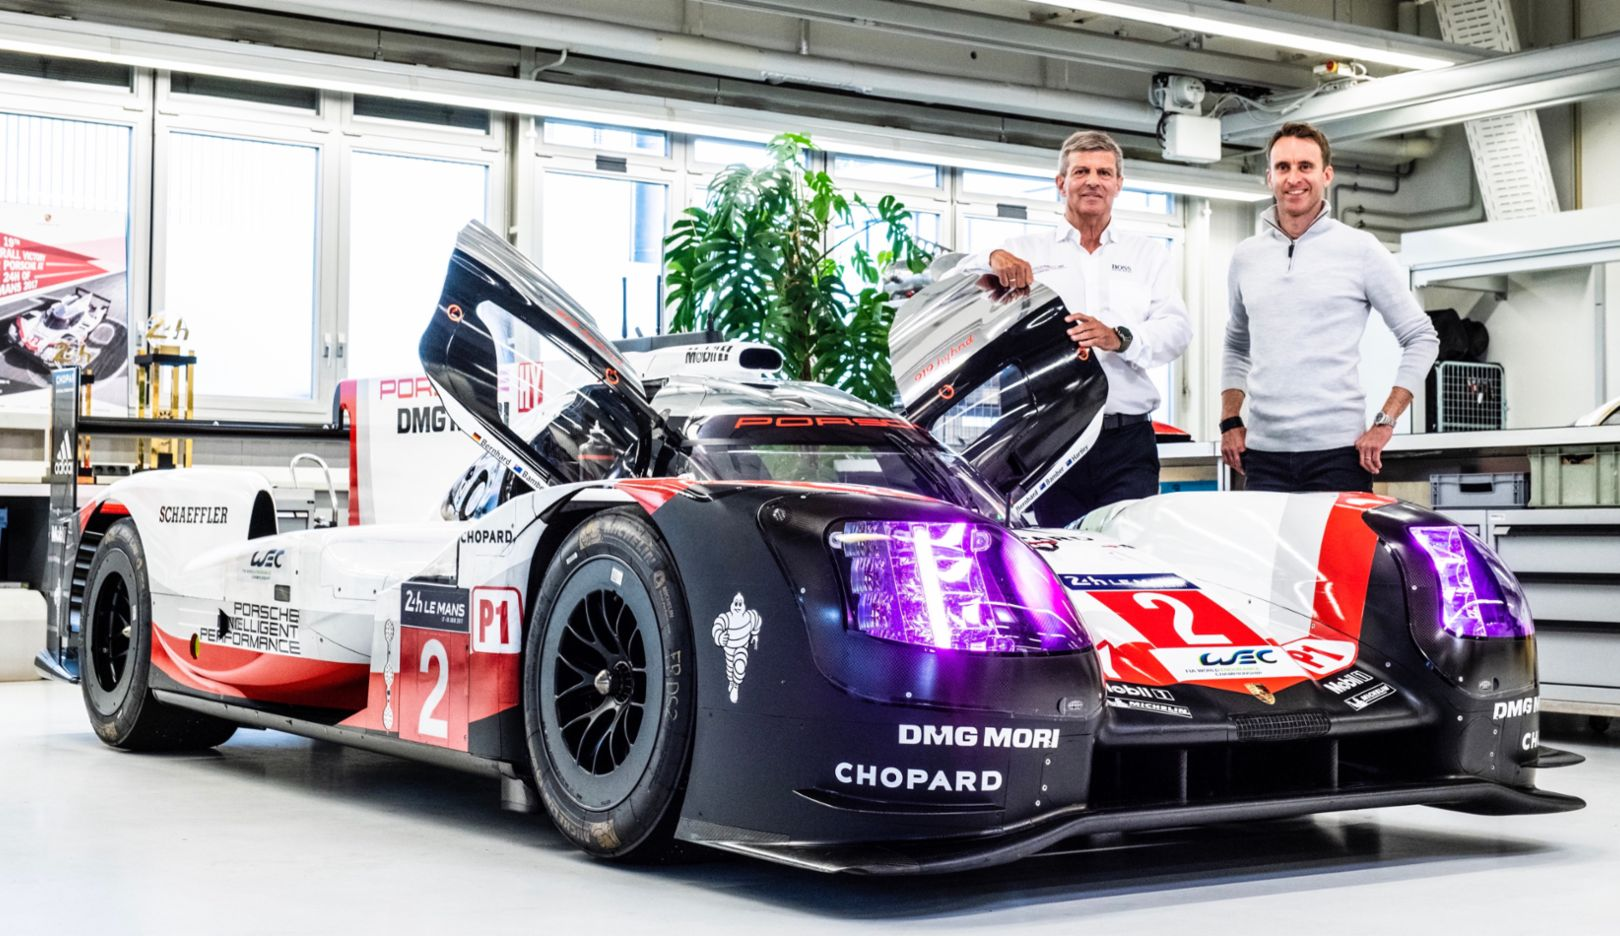 Hat trick after chase to catch up: the Porsche success story in Le Mans in 2017 - Image 8